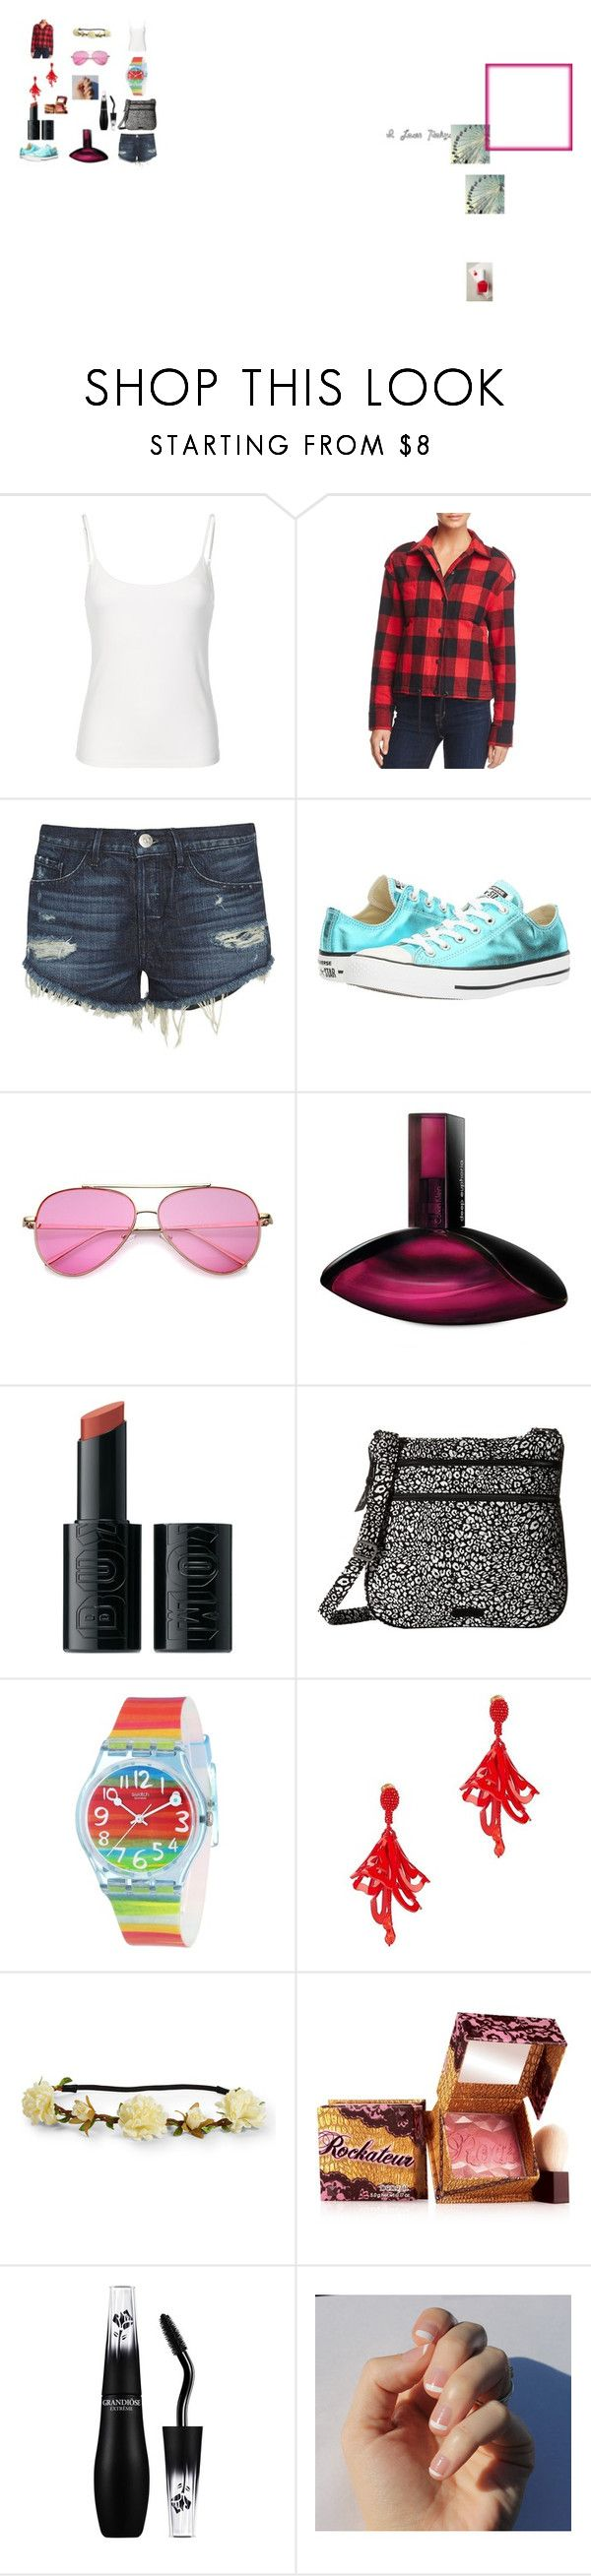 """Casual Date"" by keb2005 ❤ liked on Polyvore featuring Moose Knuckles, 3x1, Converse, Calvin Klein, Buxom, Vera Bradley, Swatch, Oscar de la Renta, Aéropostale and Benefit"